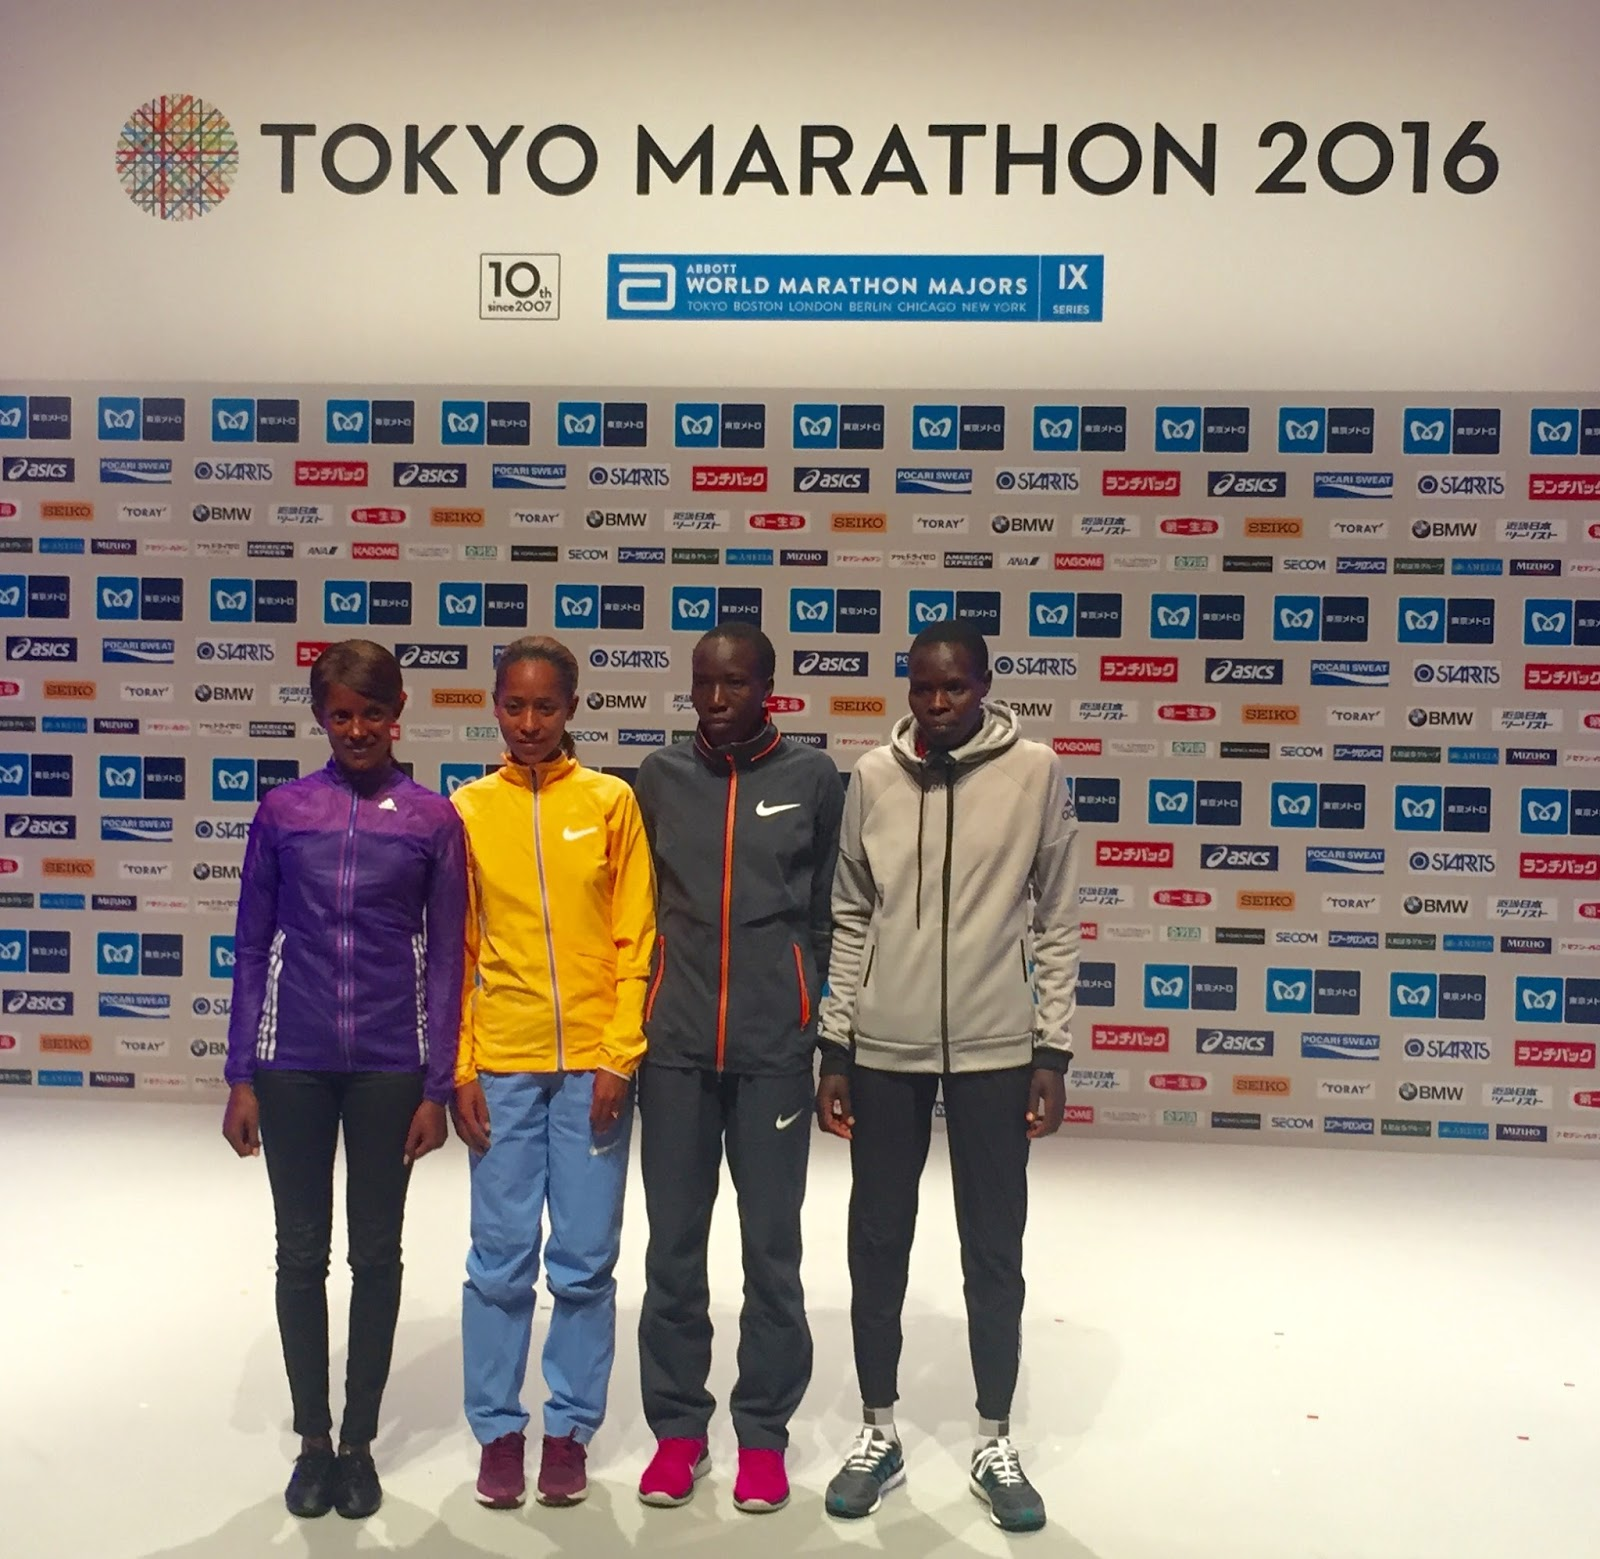 tokumoto kasumi Along with Chumba, Emmanuel Mutai (Kenya) and Eliud Kiptanui (Kenya) will  be pushing the race toward record territory with a first half planned in  the ...